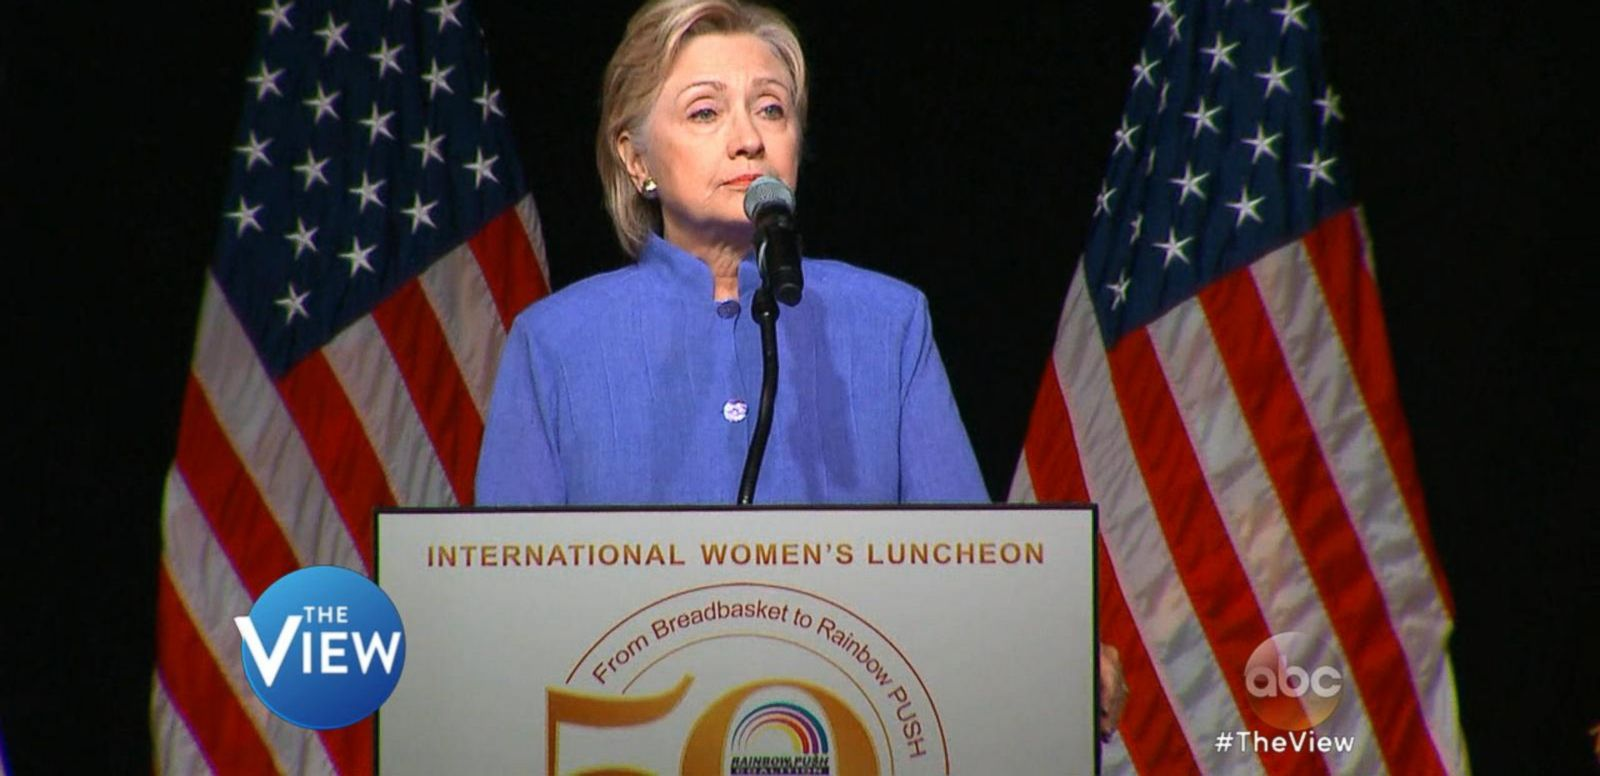 VIDEO; Hillary Clinton Admits She Has 'Work To Do' Regarding Voters Who Don't Trust Her